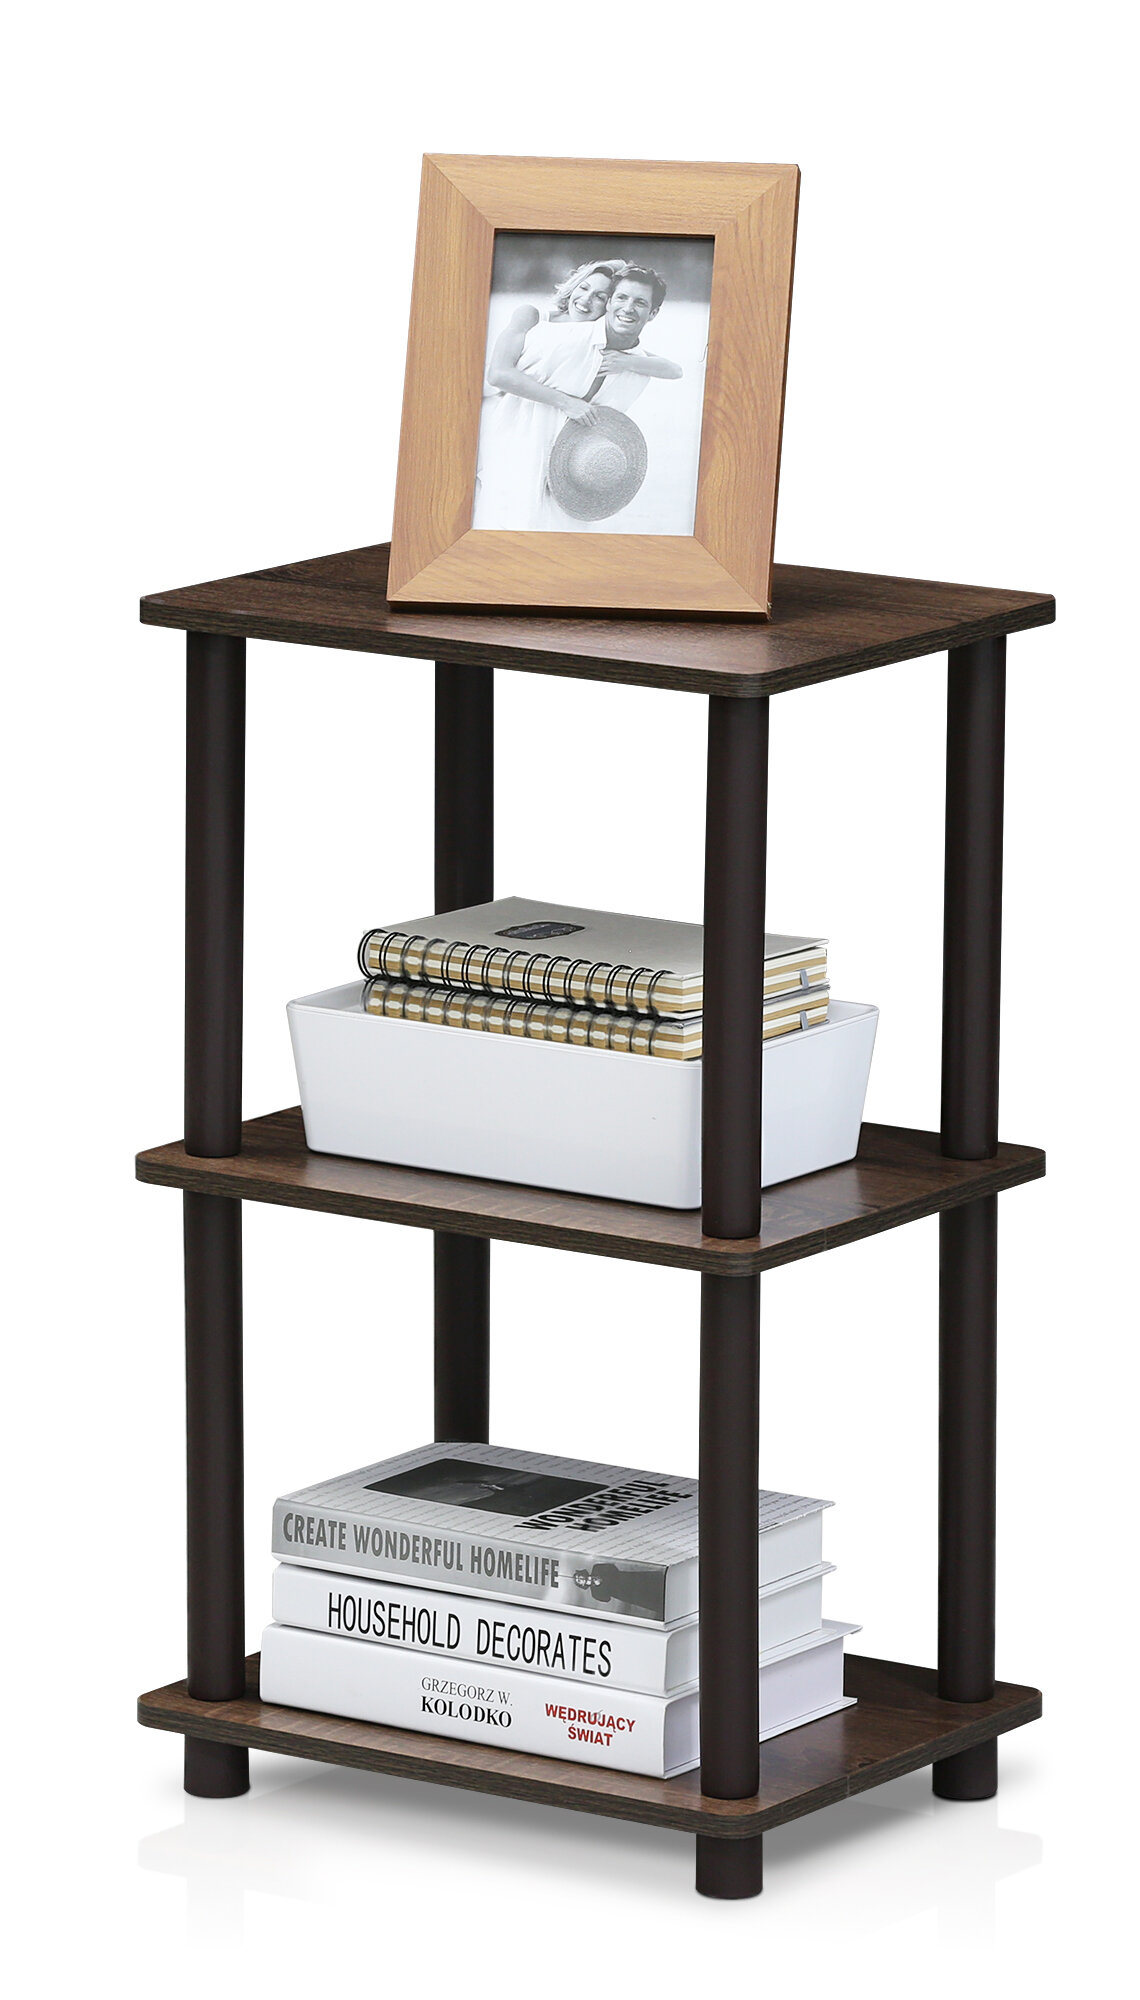 Winston Porter Khloe 25 H X 15 W X 11 6 D Turn N Tube 2 Space Shelving Unit Reviews Wayfair